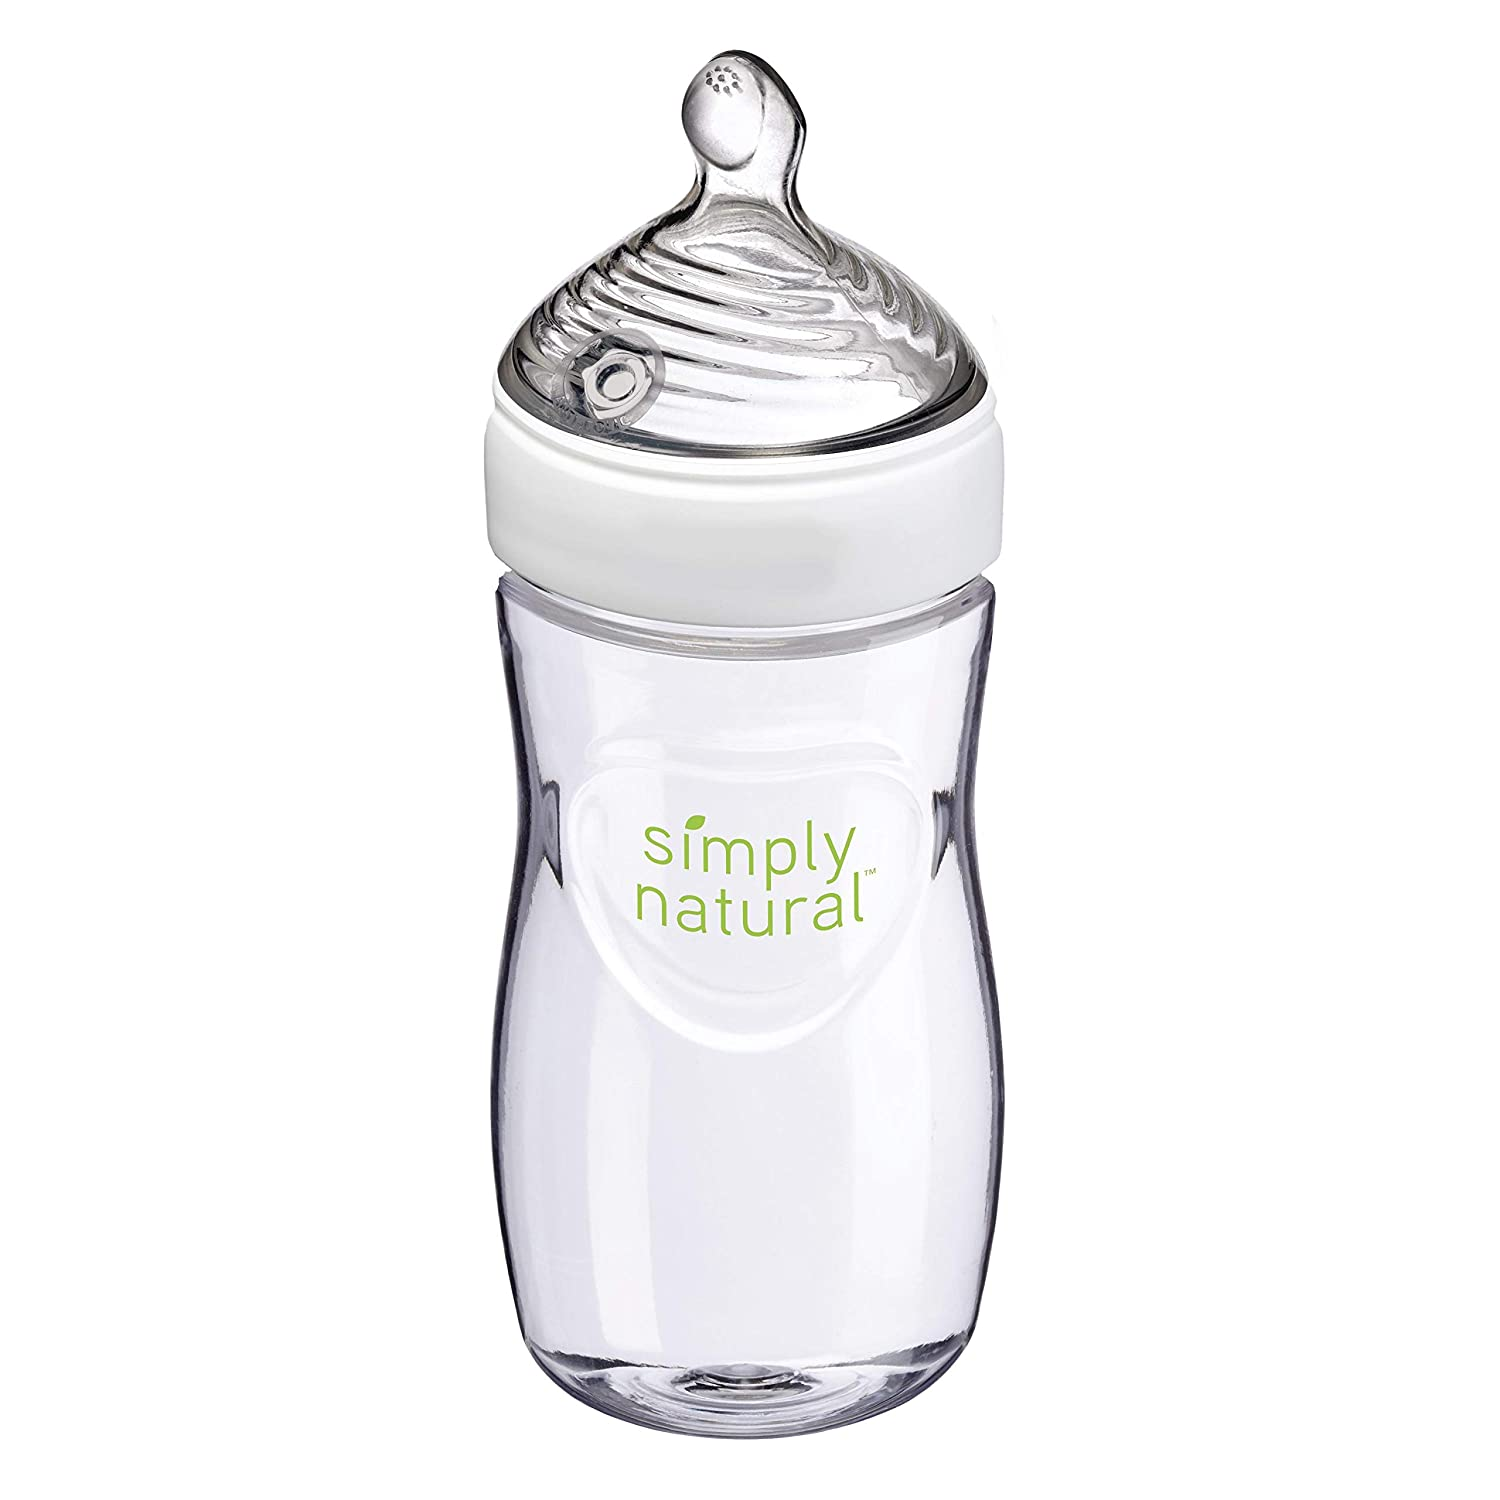 NUK Simply Natural Baby Bottle, 9 Oz